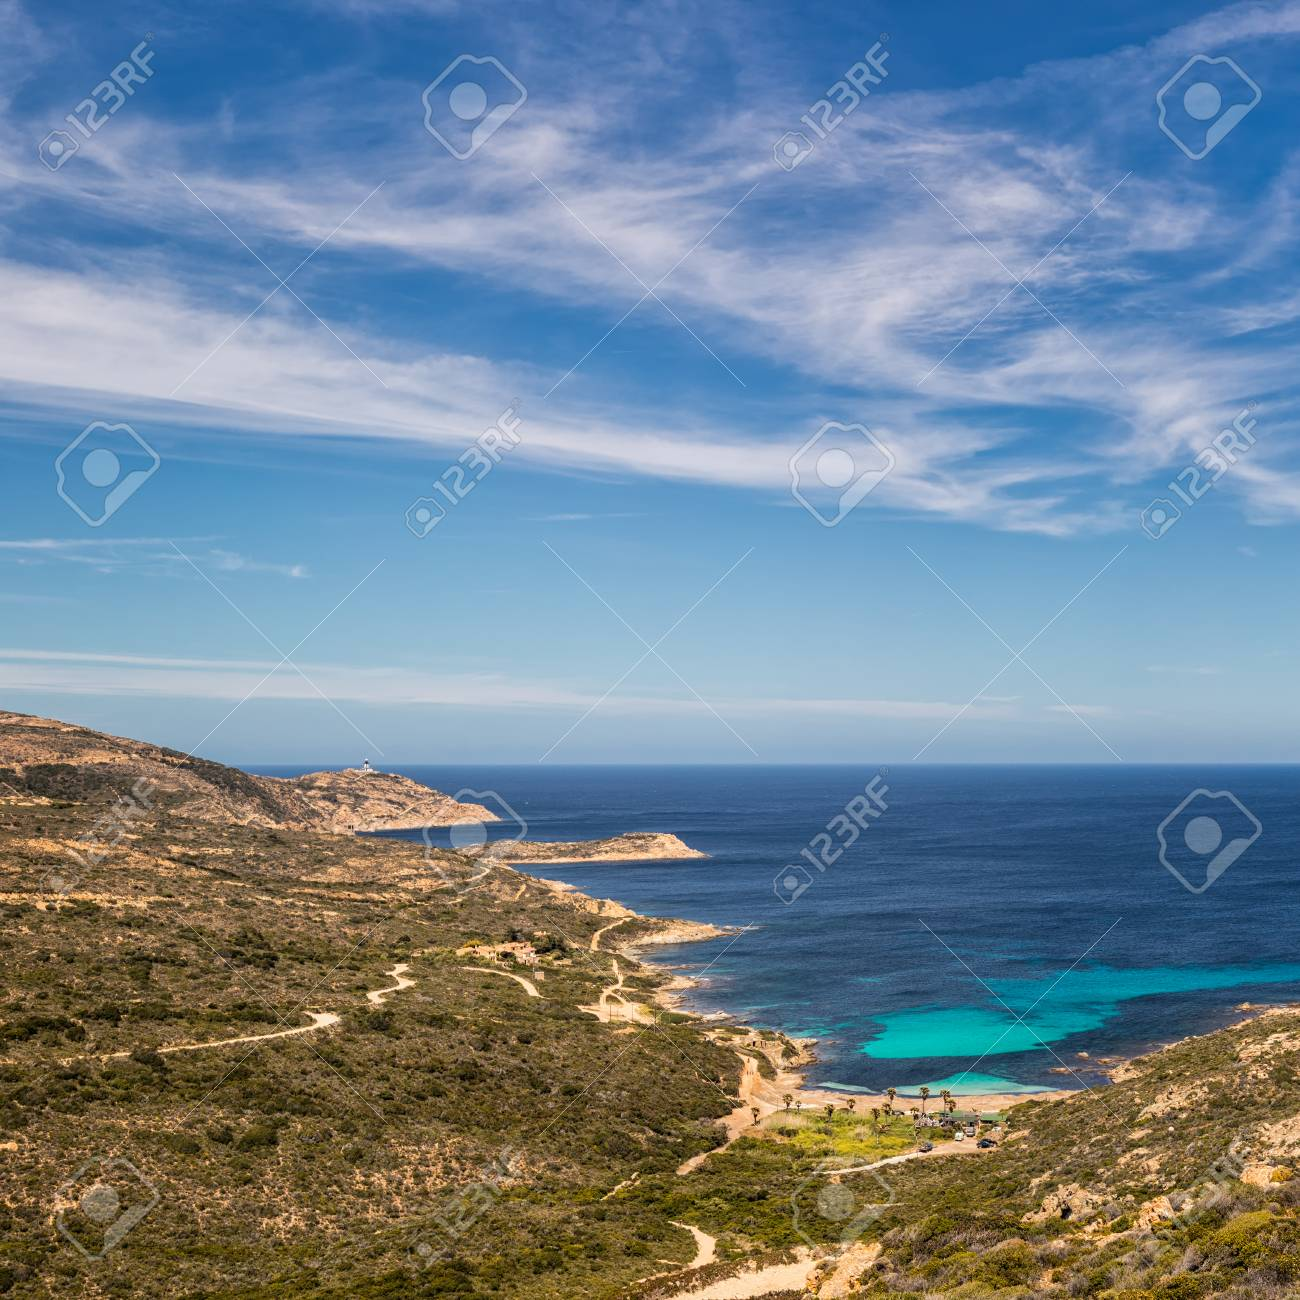 c00969008837 ... near Calvi on the west coast of Corsica looking towards lighthouse in  distance and turquoise Mediterranean sea under deep blue sky with wispy  clouds